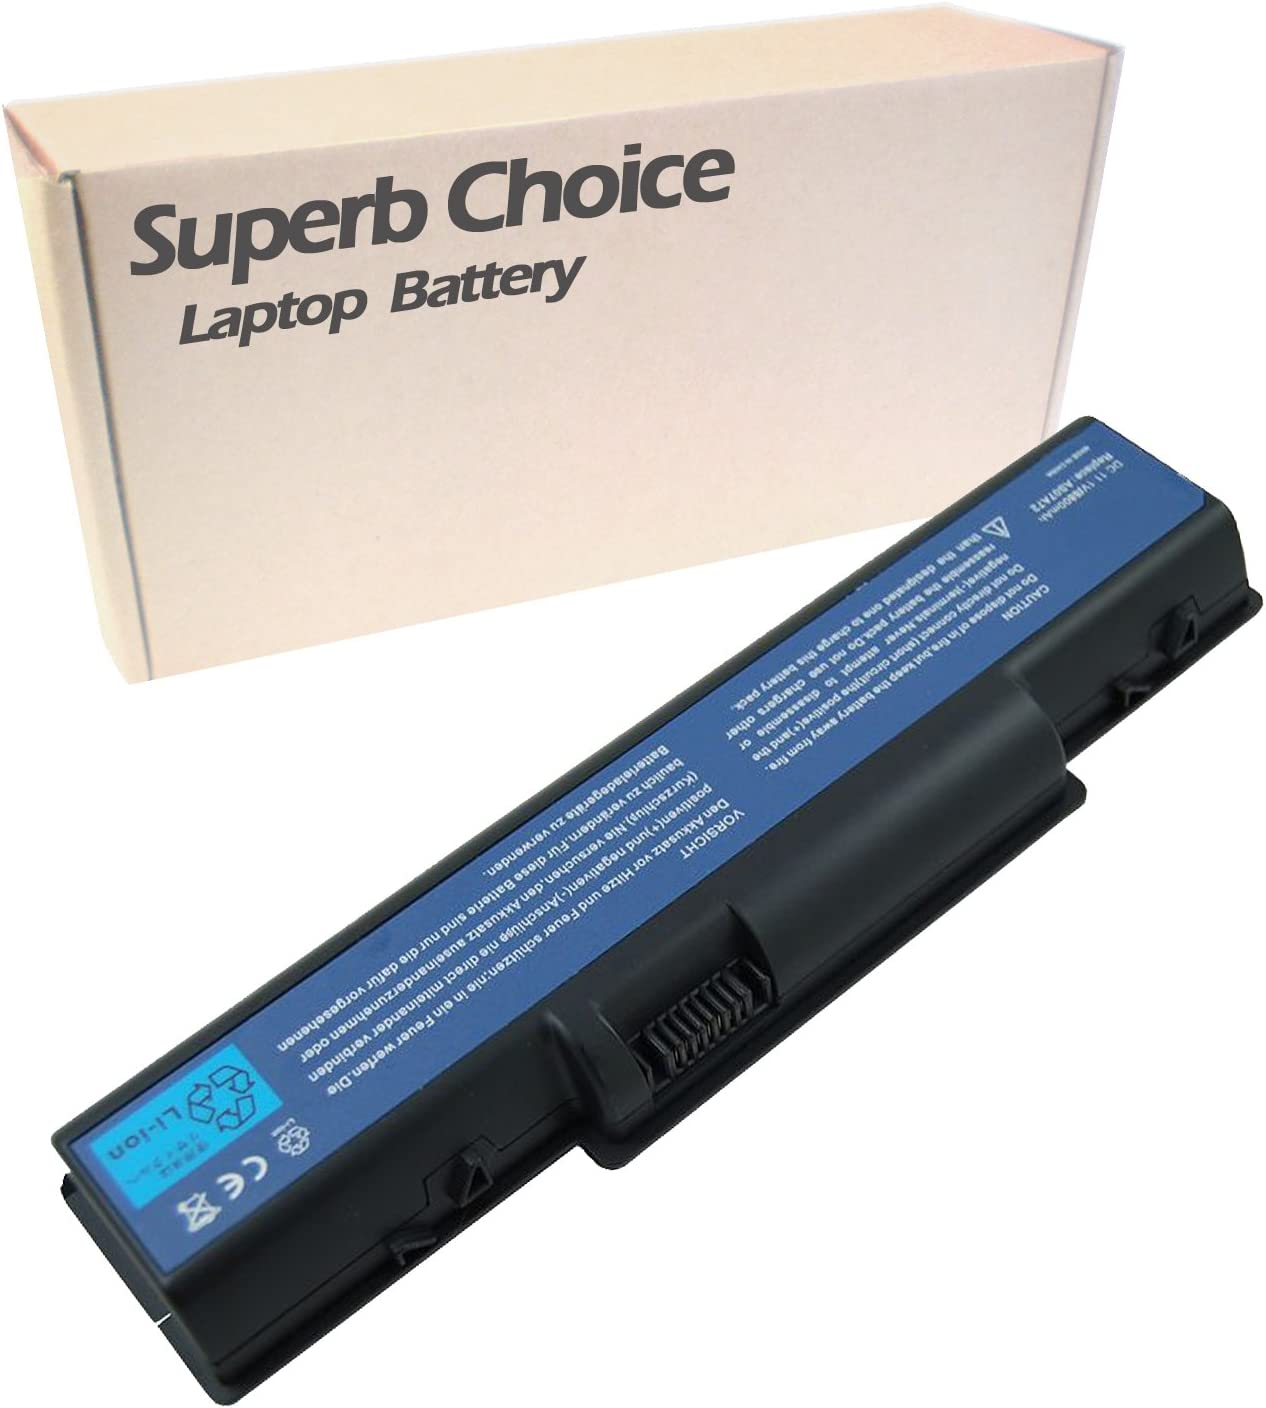 Superb Choice 12-Cell Battery Compatible with ACER Aspire MS2219 MS2220 MS2264 MS2265 MS2286 KBLG0 Z01 Z03 ZK6